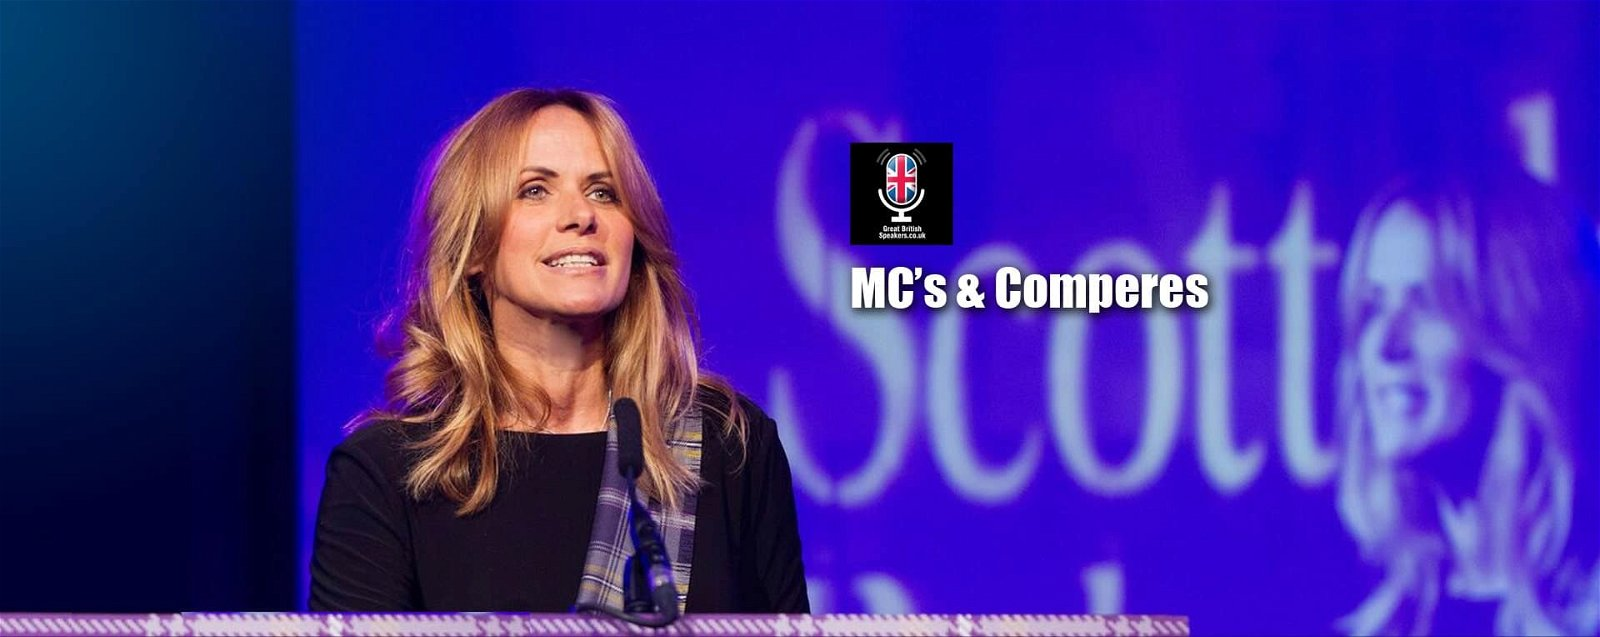 MCs & Comperes Slider Great British Speakers-min